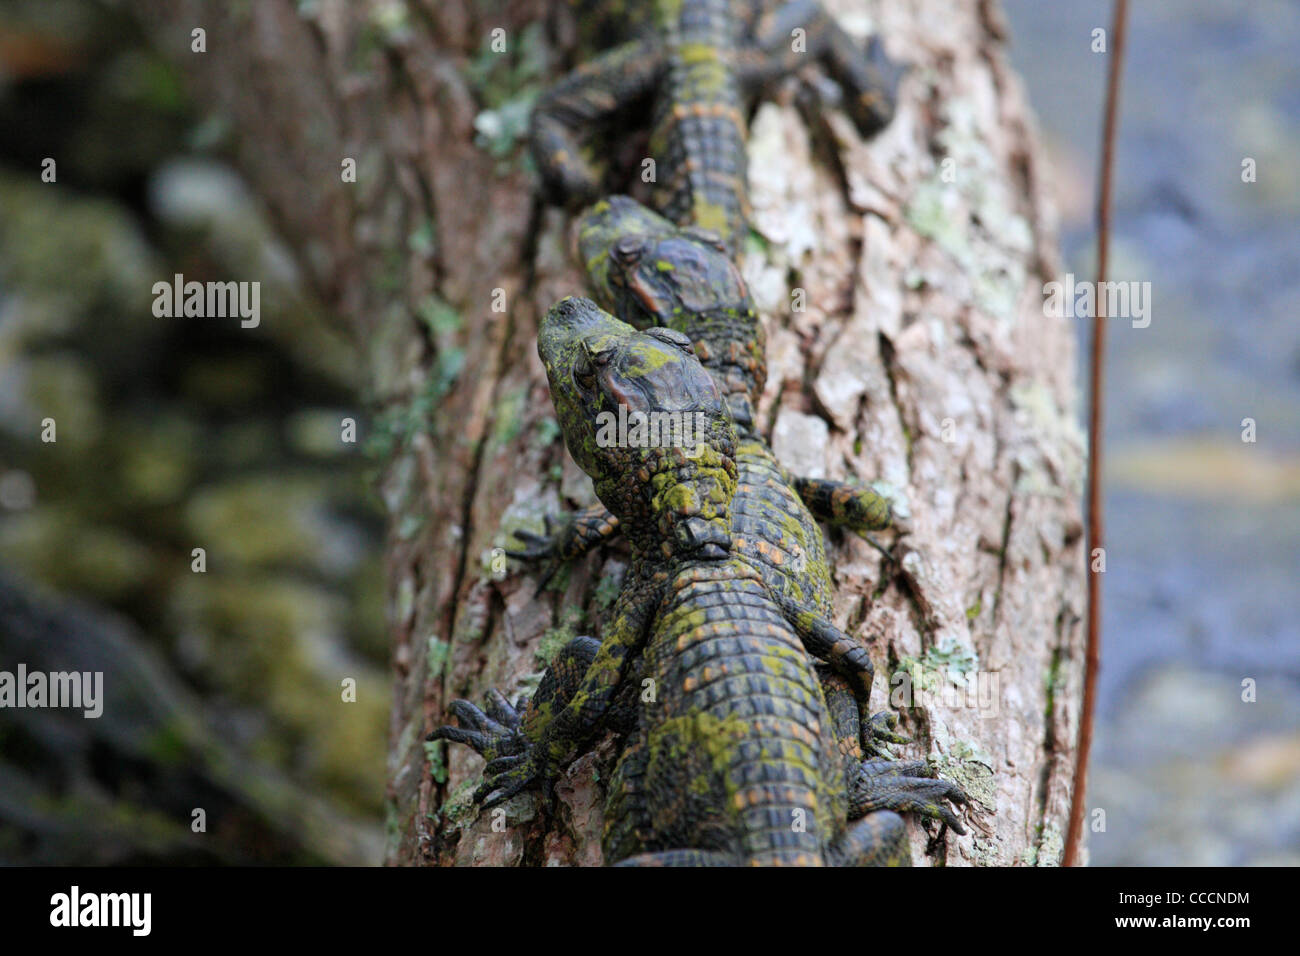 Young American alligators (Alligator mississippiensis) - Stock Image